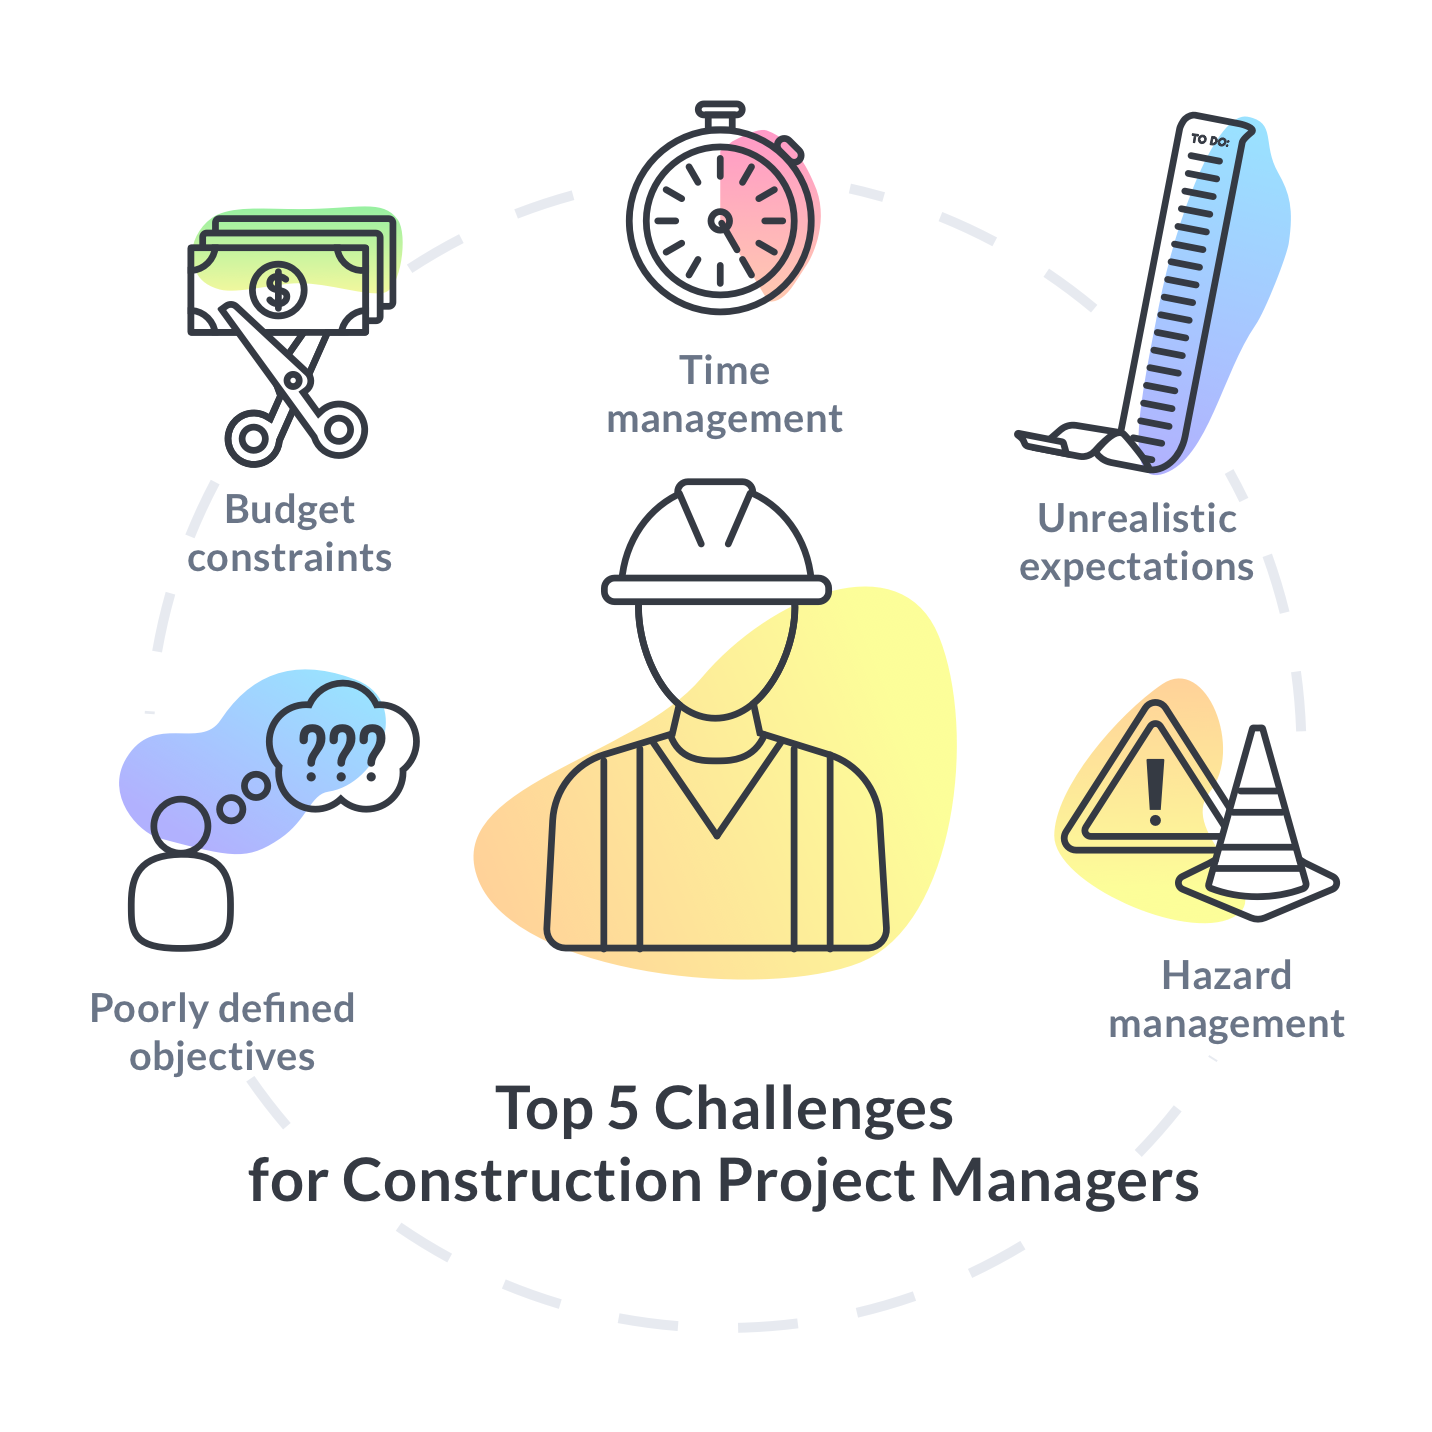 Top 5 Challenges For Construction Project Managers